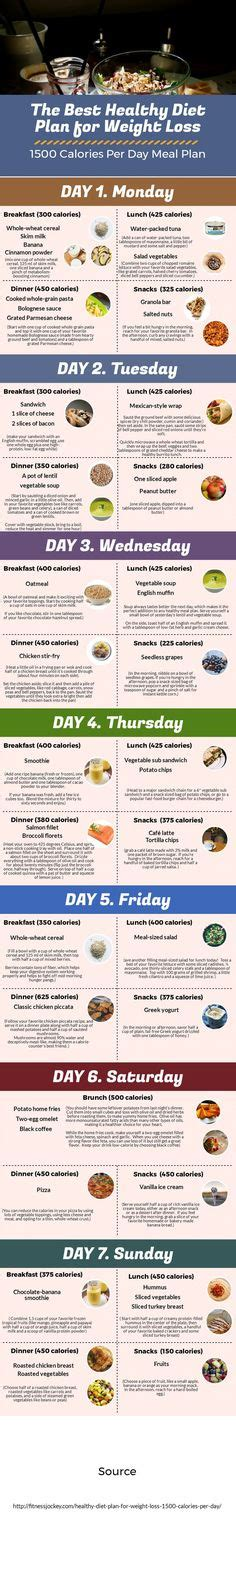 weight loss 1500 calories per day eat 1500 calories a day to lose weight free menu and